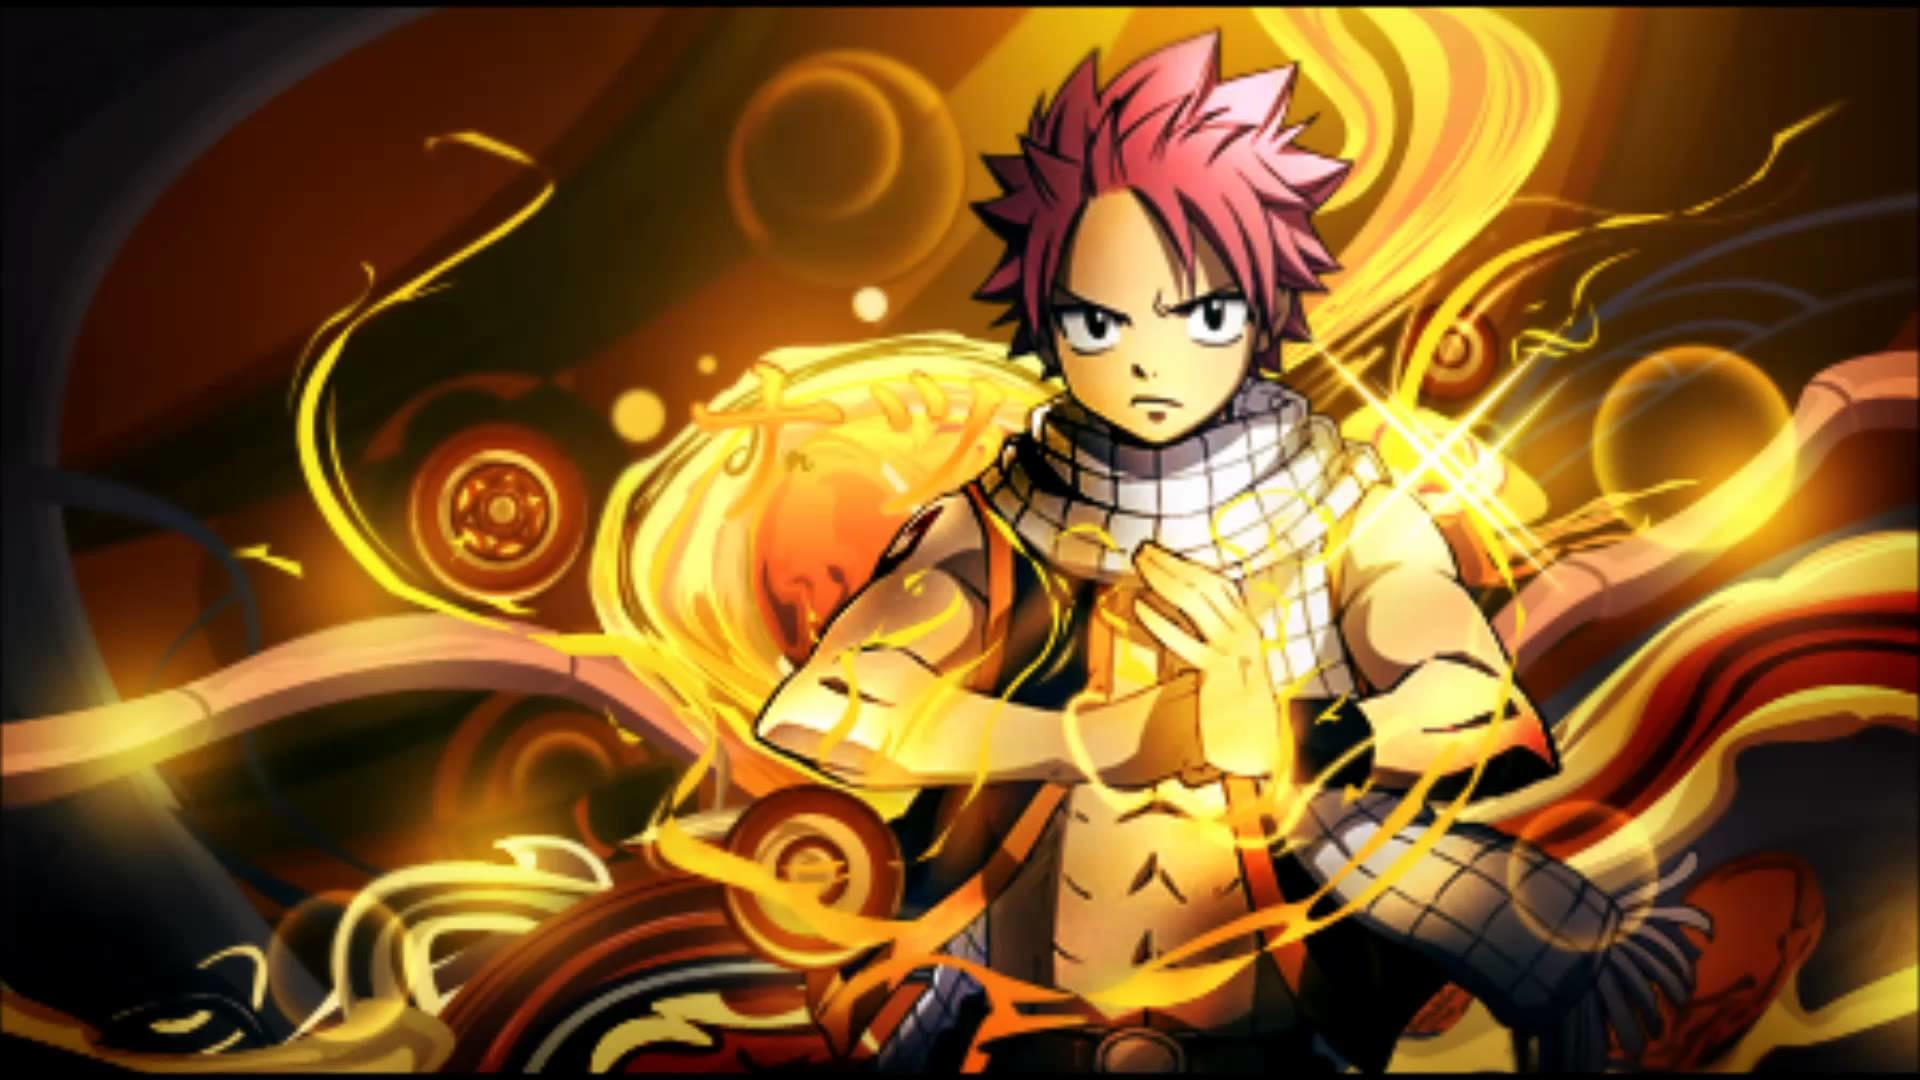 2560x1600 Happy Fairy Tail Scarlet Erza Pigs Dragneel Natsu Cakes Heartfilia Lucy Playstation Portable High Quality Wallpaper